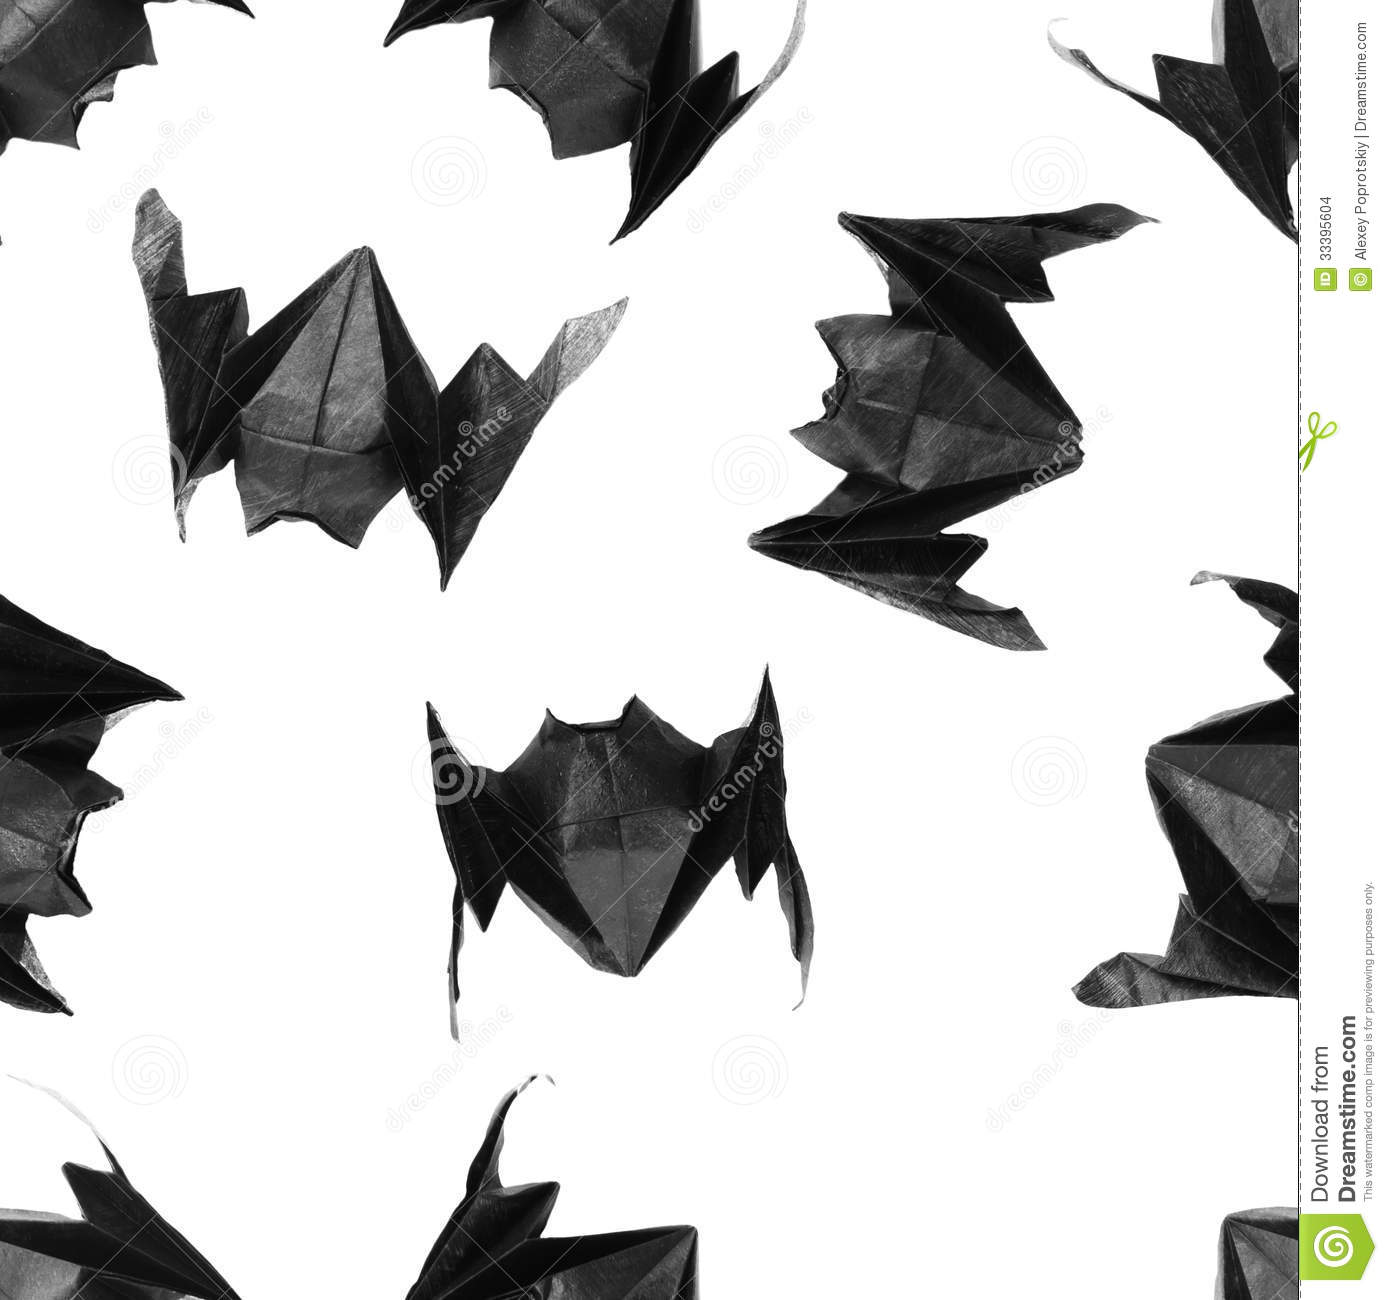 Halloween origami bats pattern stock photo image of shape halloween origami bats pattern jeuxipadfo Gallery